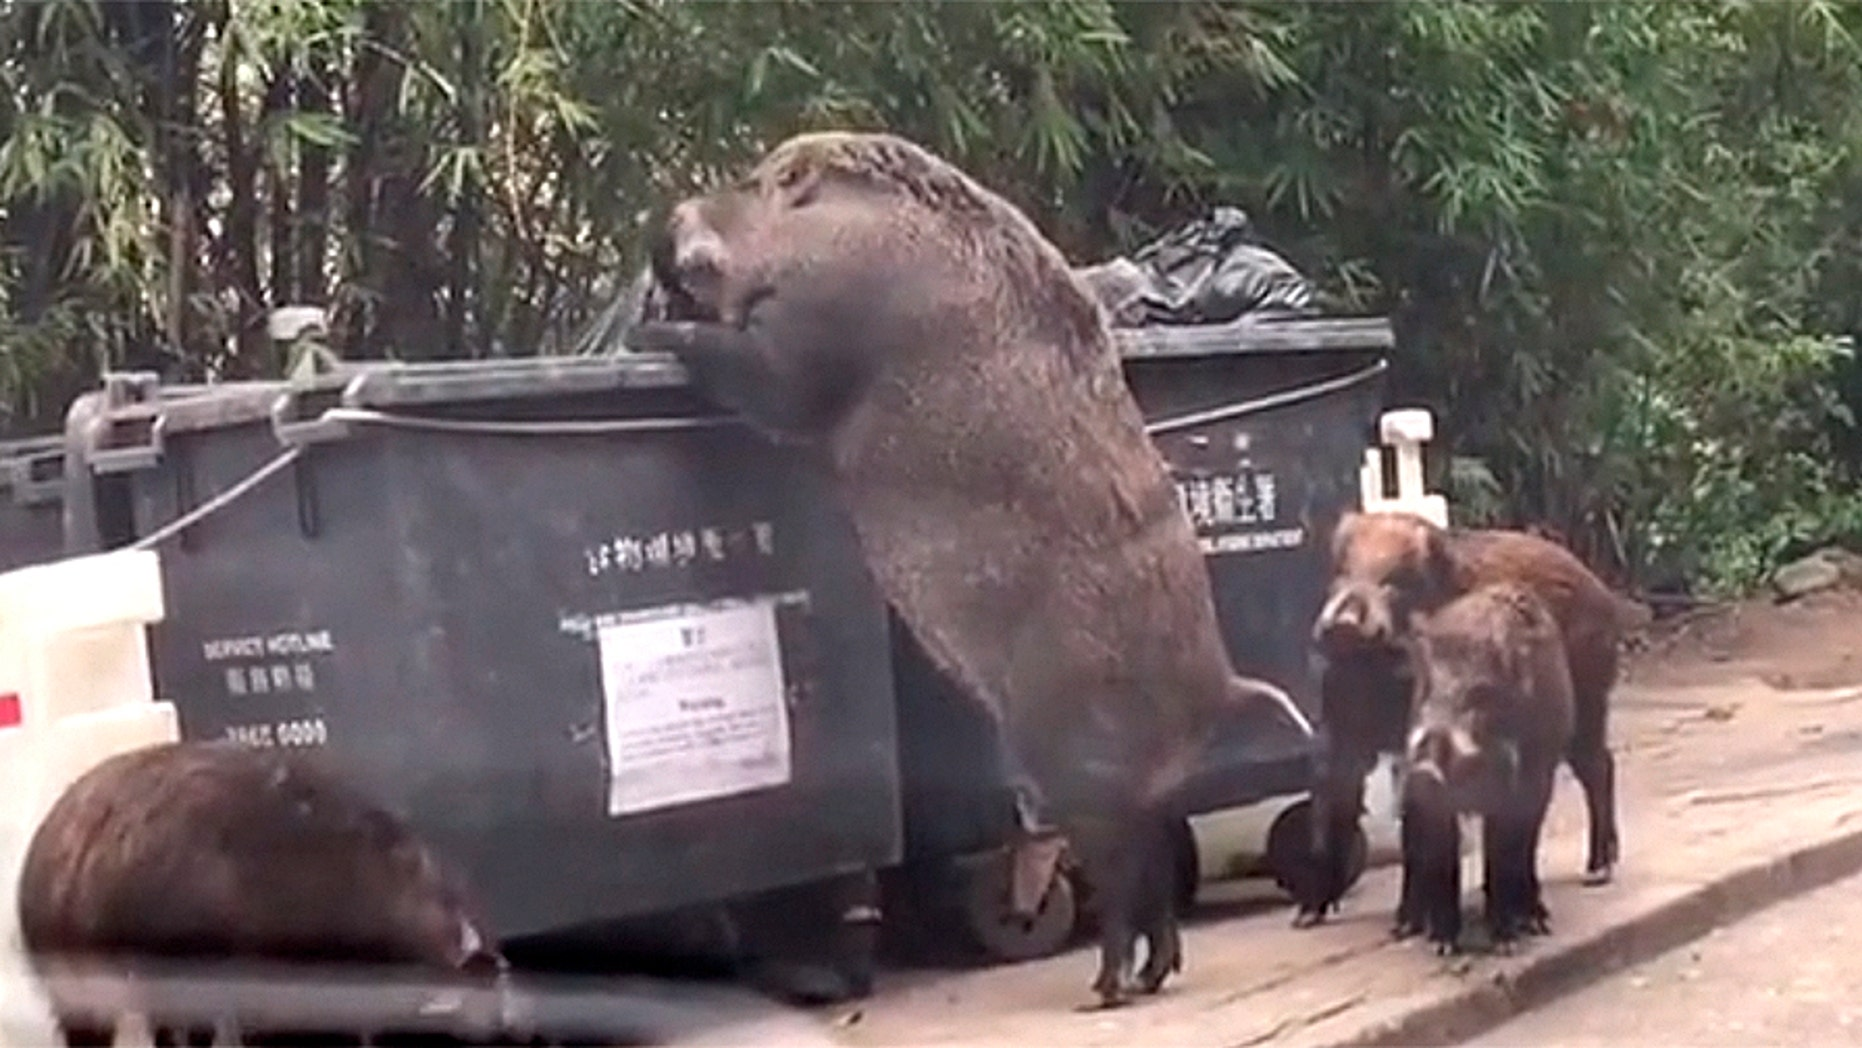 Giant pig caught on camera ravaging dumpster near school ...